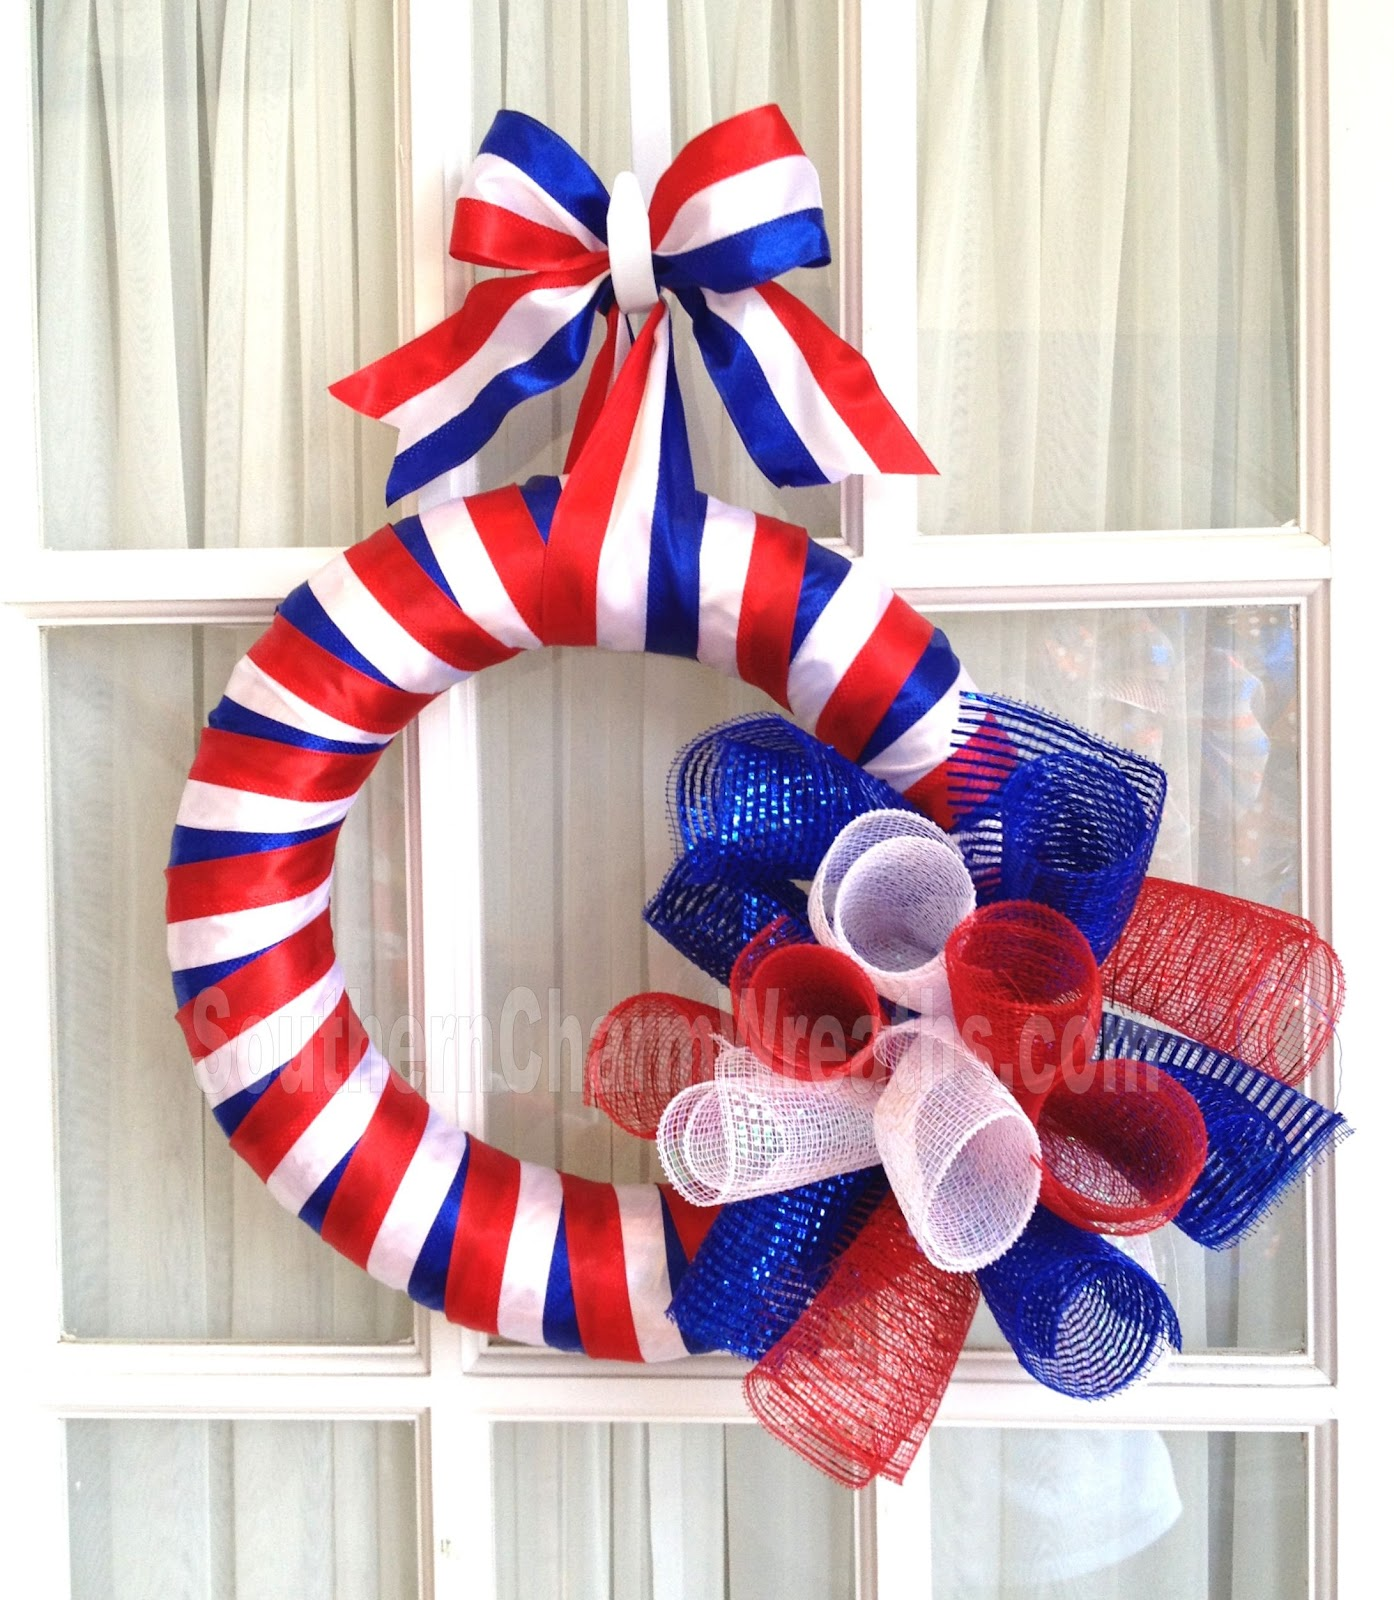 How to Make Ribbon Deco Mesh Wreath Instructions